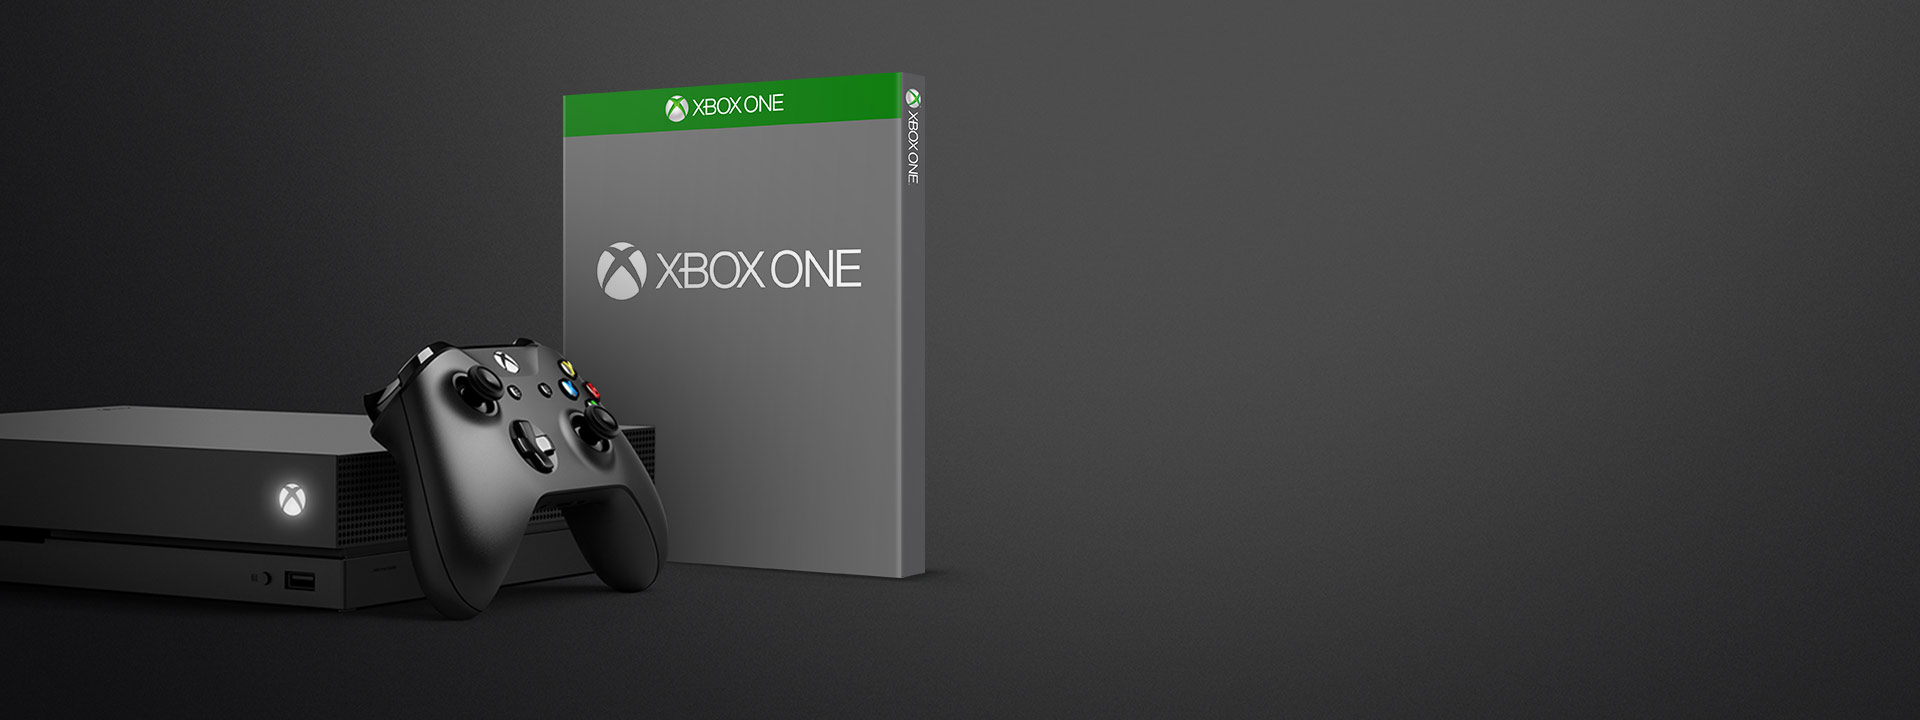 Xbox One X with Wireless Controller and a blank boxshot